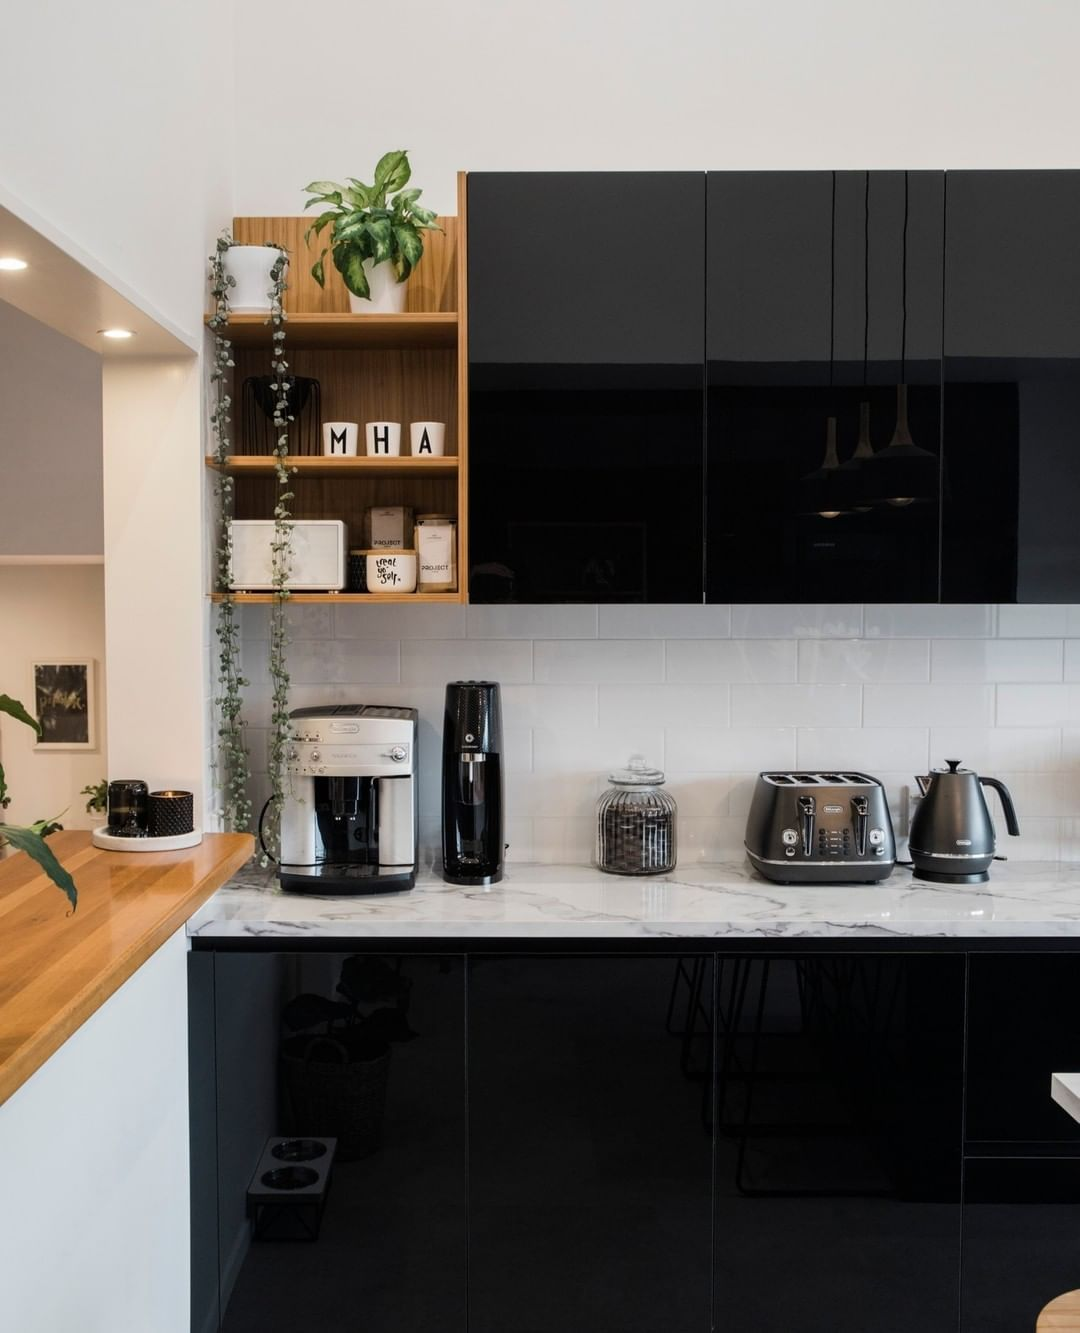 Your Home And Garden On Instagram Making A Case For Glossy Black Kitchen Cabinets Photo Modern Kitchen Interiors Black Kitchens Black Kitchen Cabinets